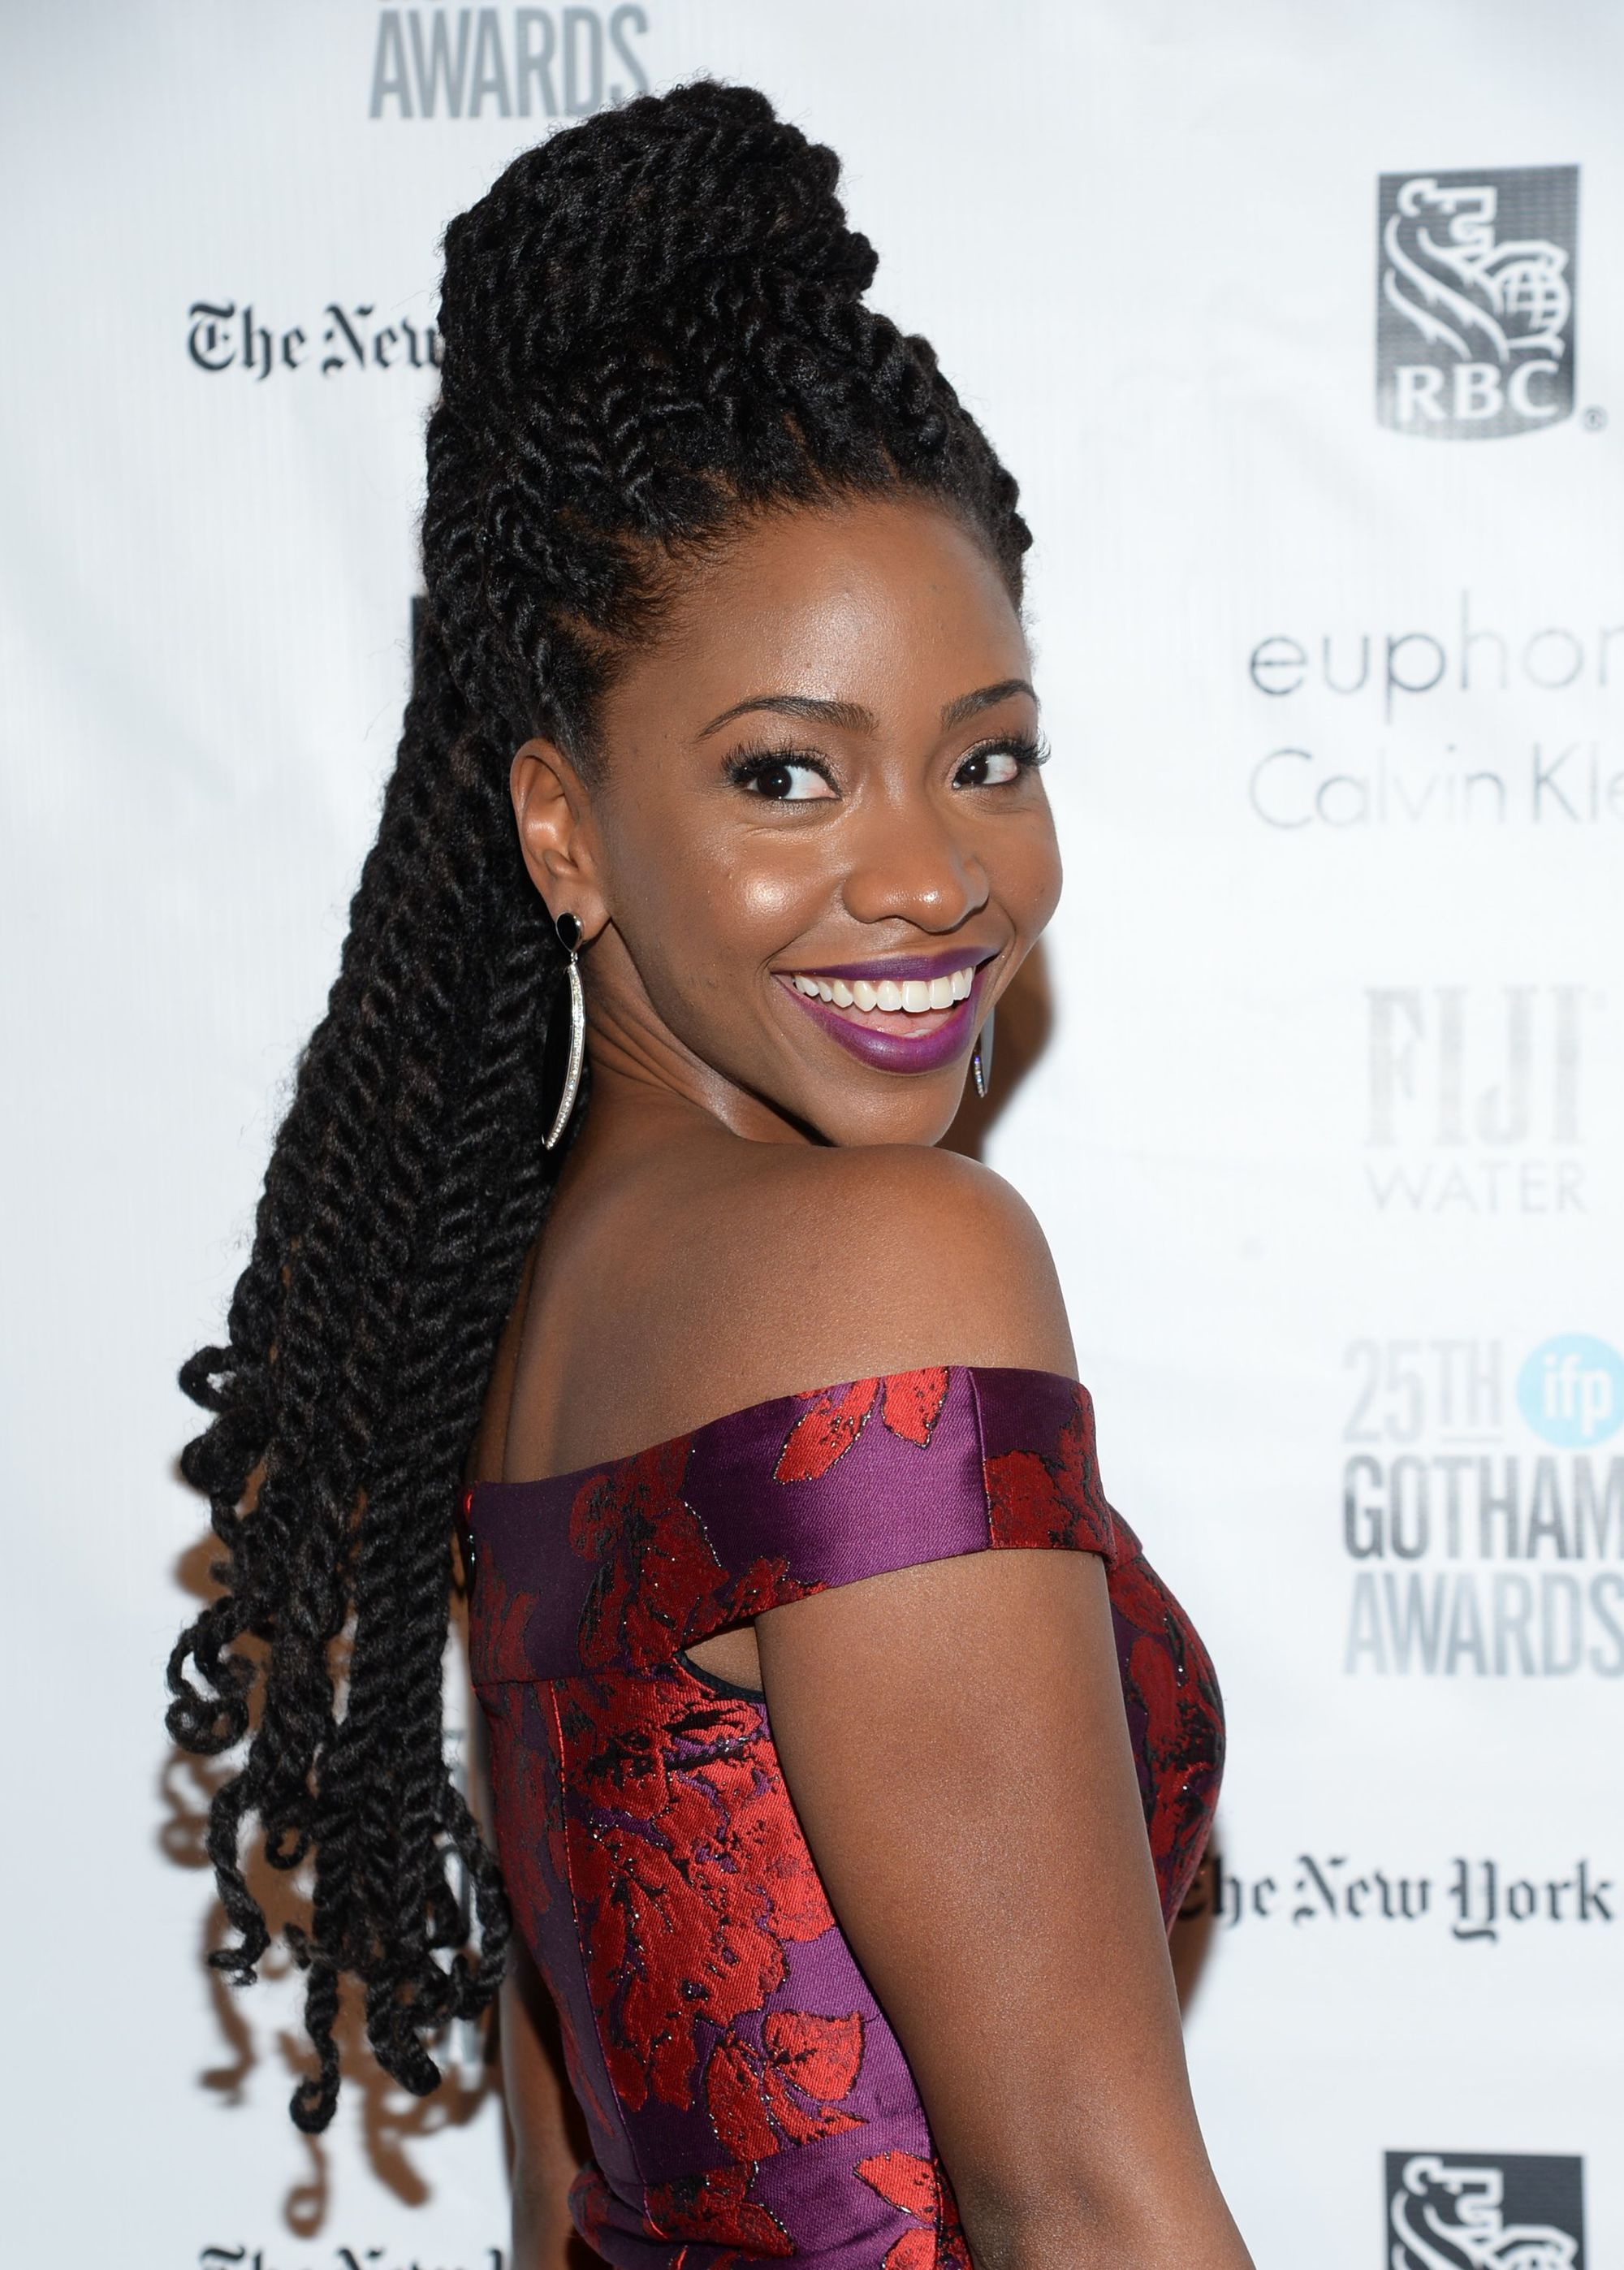 Shot of Teyonah Paris with half-up marley twists styled with curly ends, wearing a purple dress